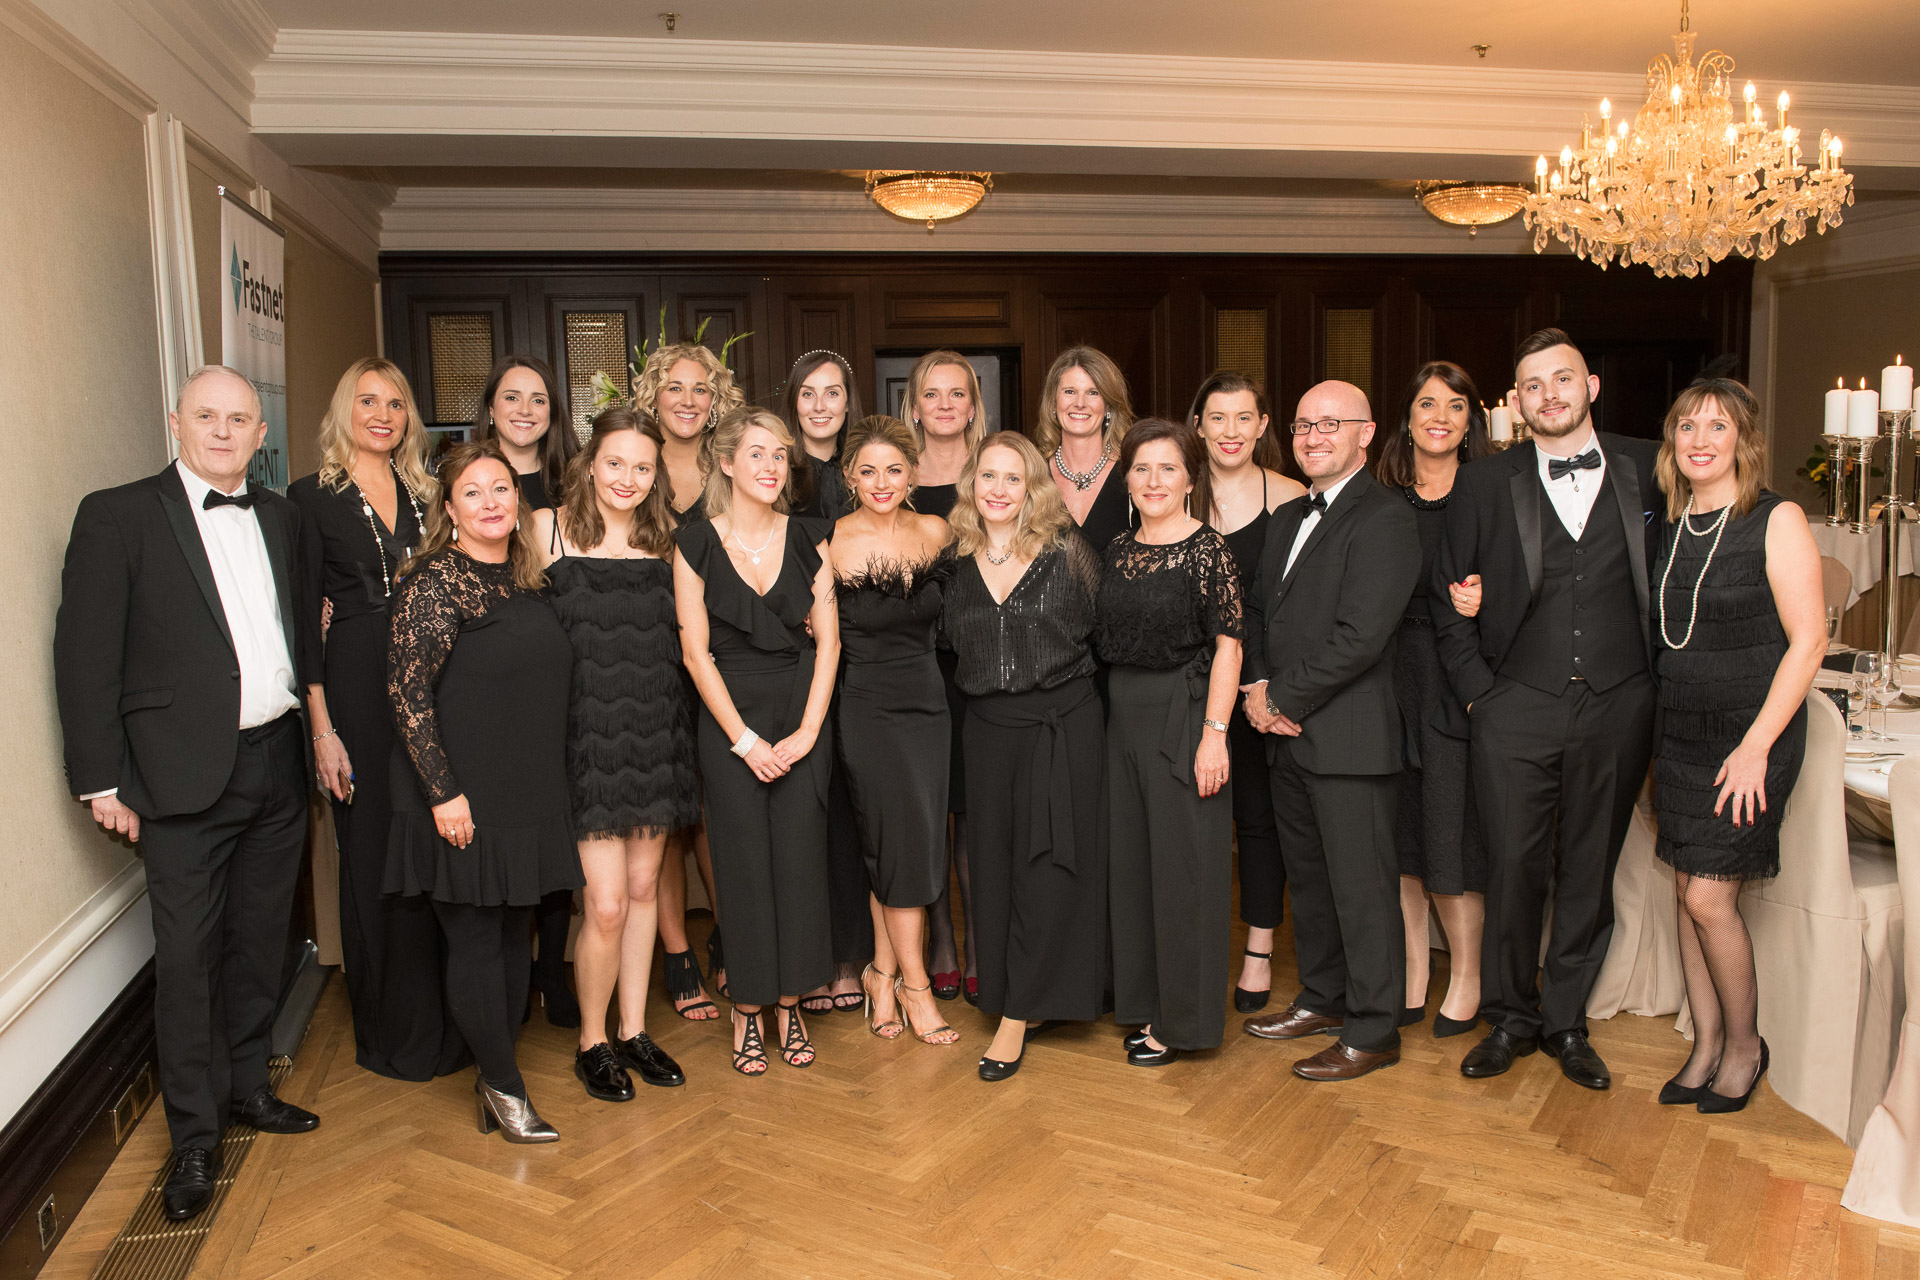 Fastnet- The Talent Group celebrating 20 years of success